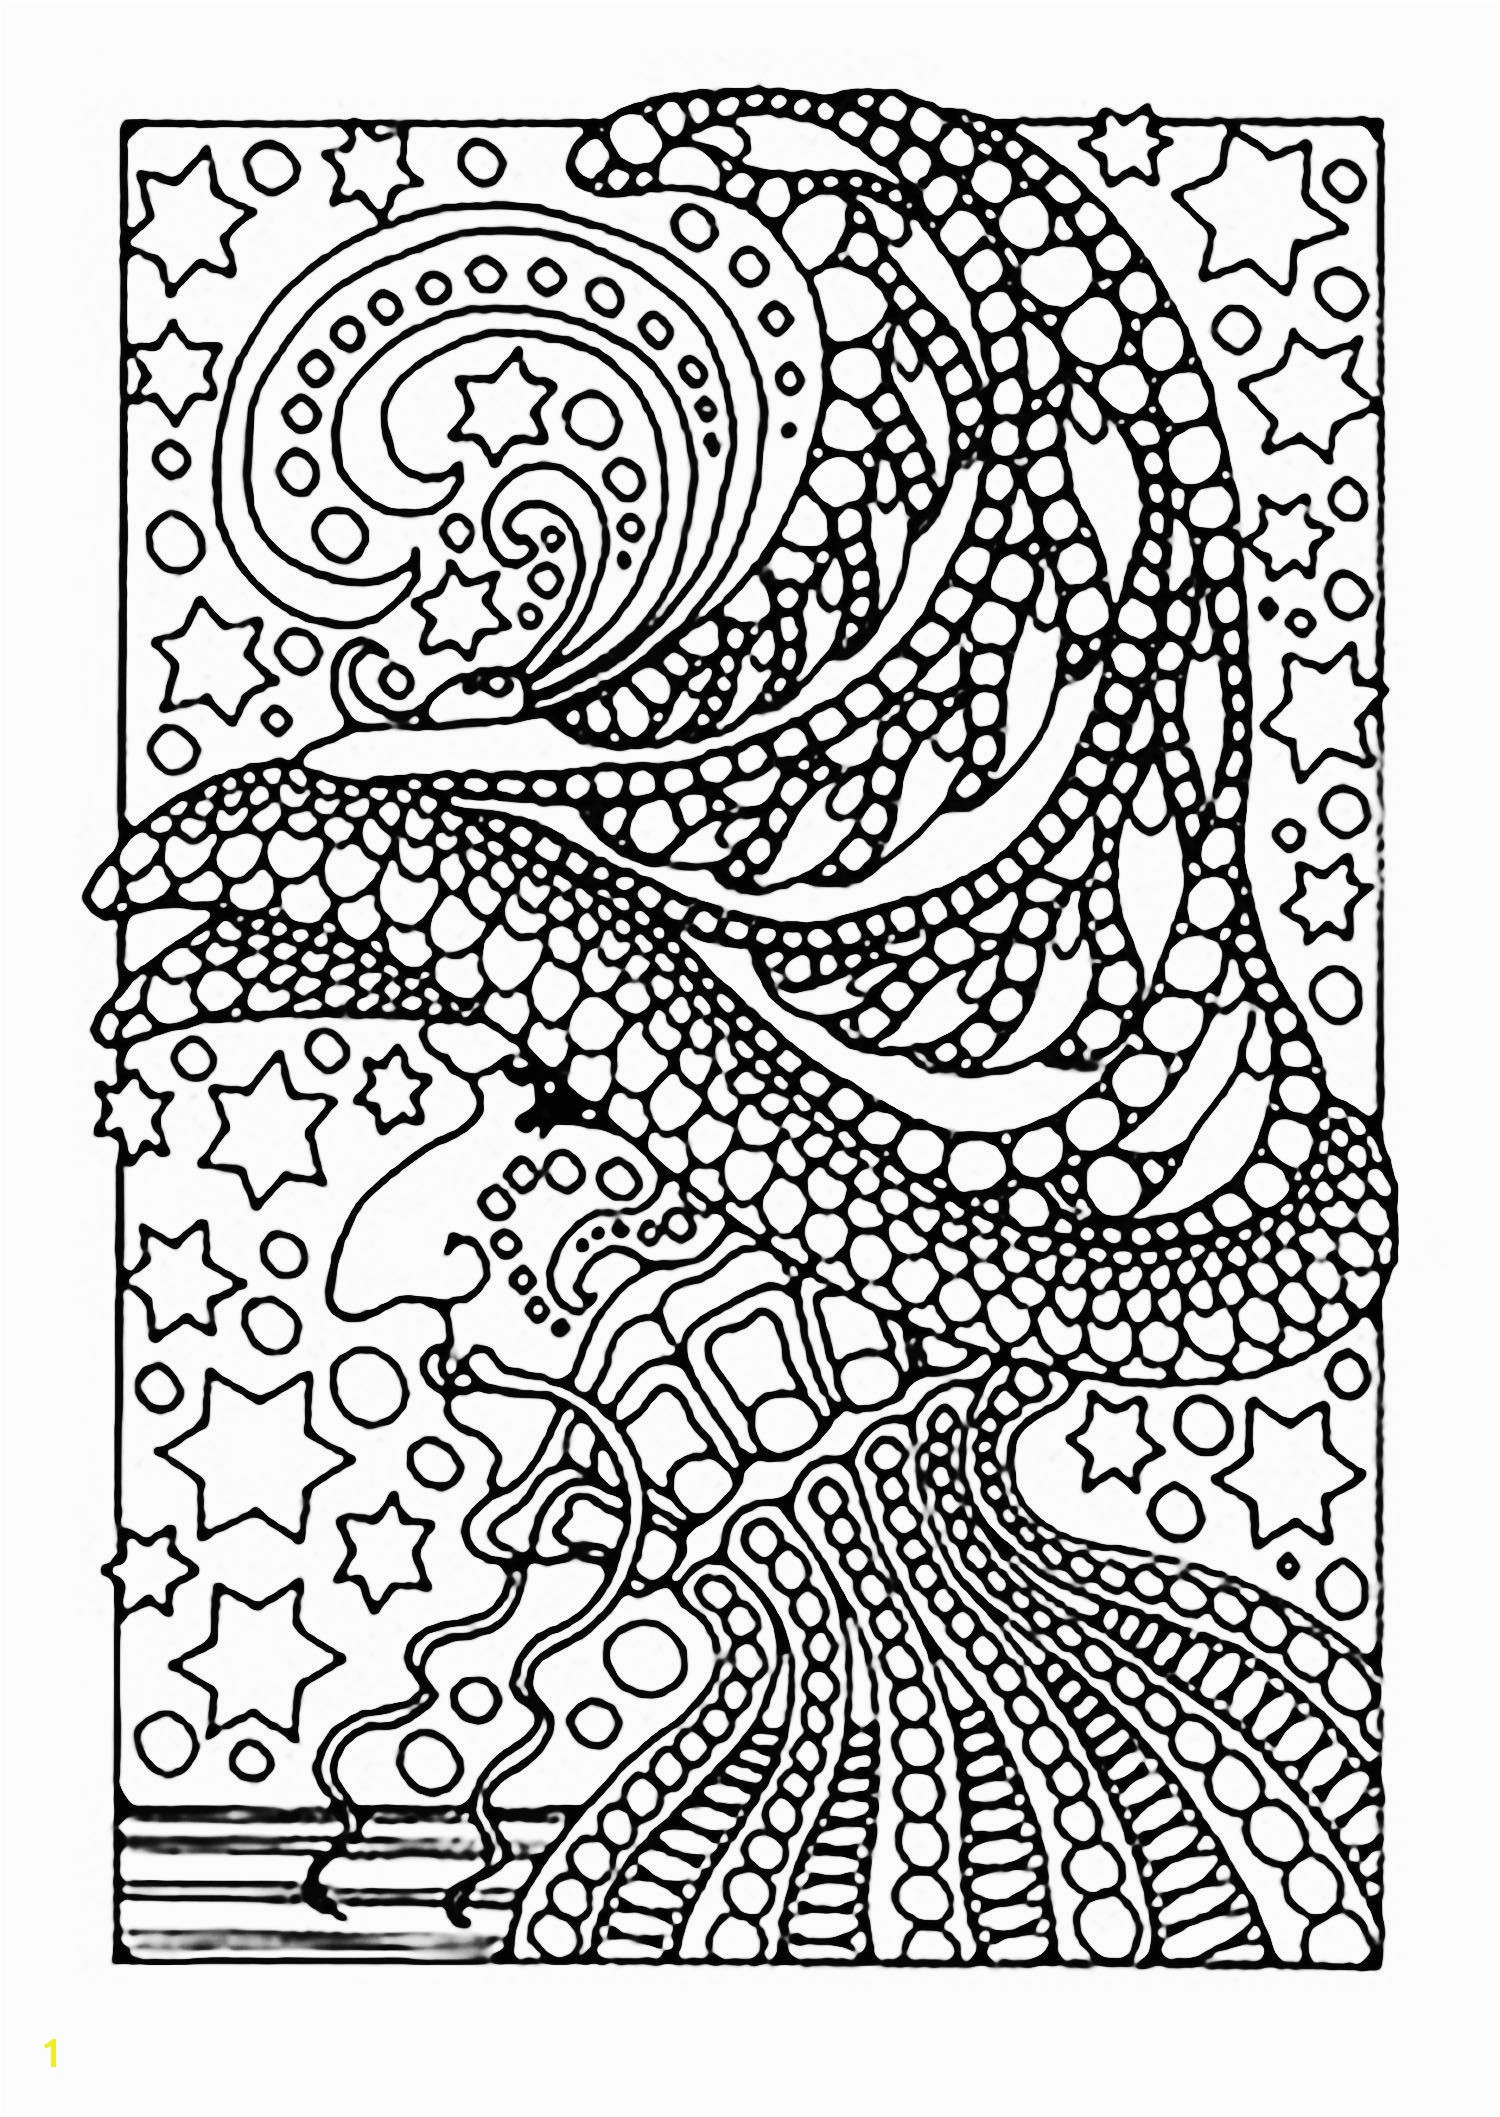 Detailed butterfly Coloring Pages Awesome Coloring Books Line Heathermarxgallery 19 Lovely Detailed butterfly Coloring Pages